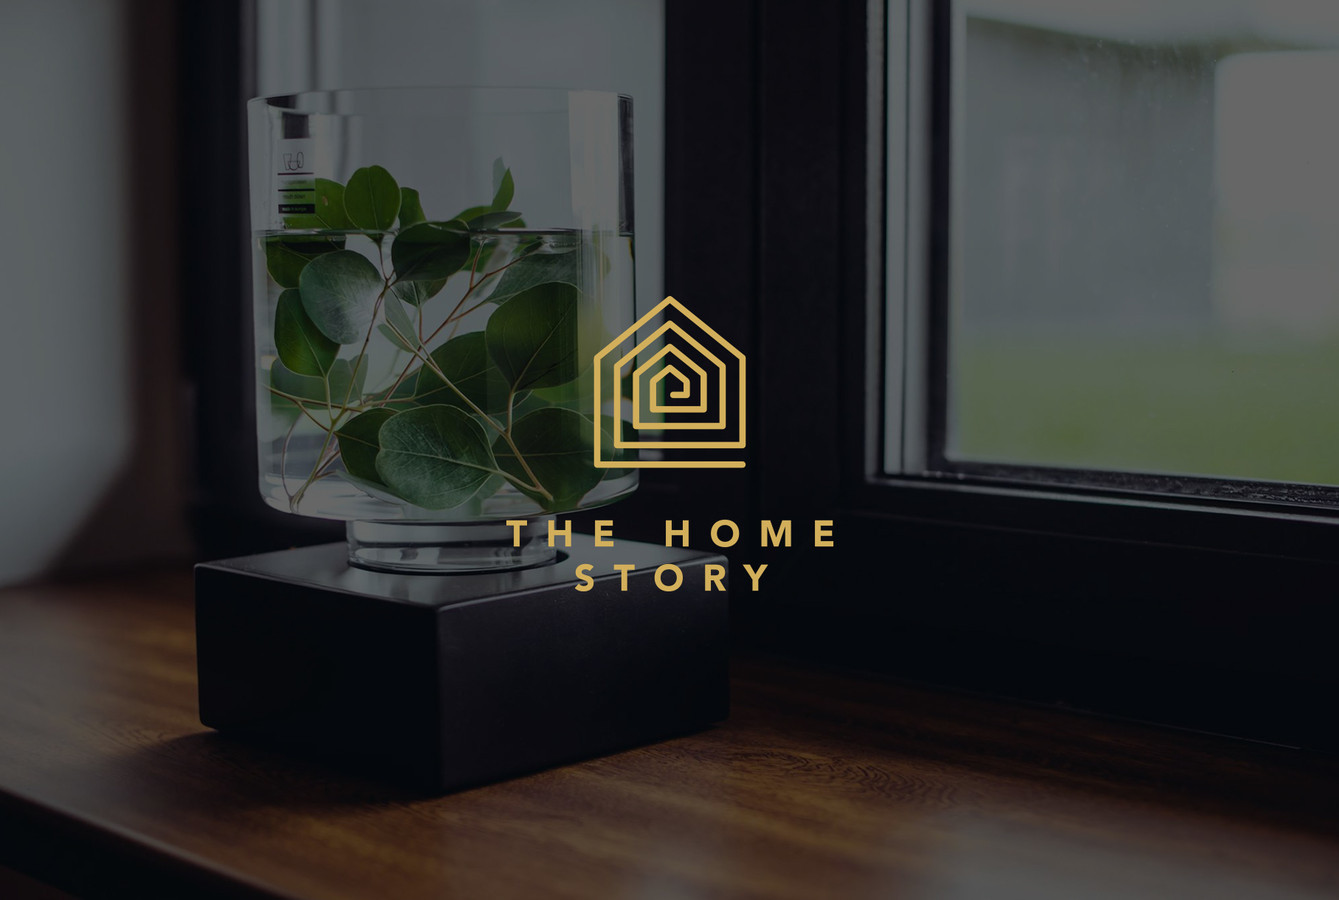 THE HOME STORY logo